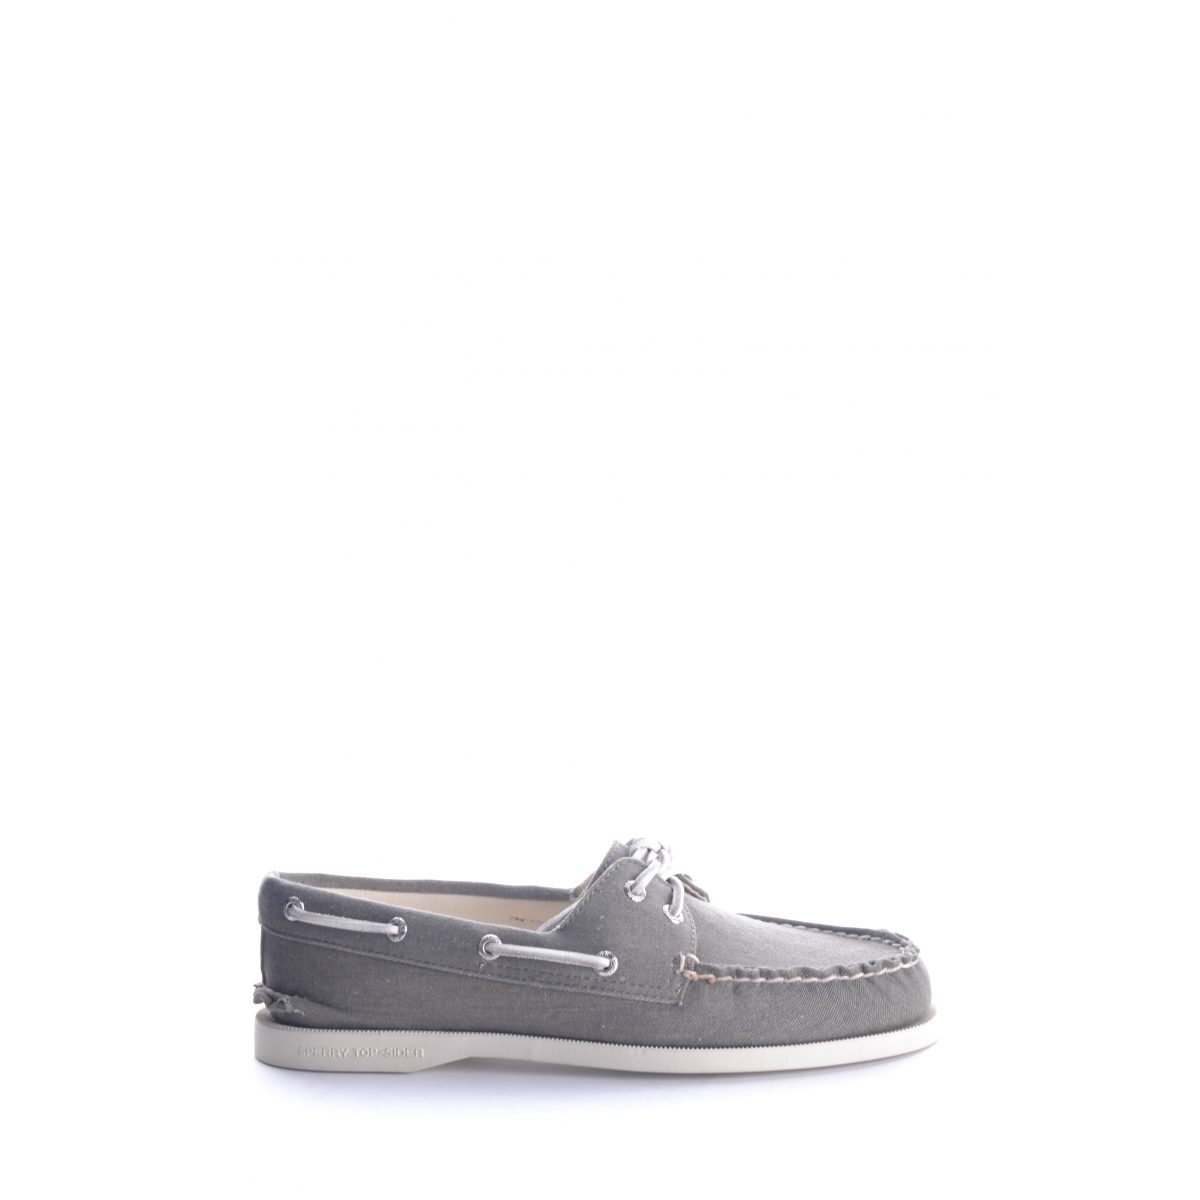 Sperry scarpe scarpe Sperry shoes AN781 13038IT -50% 687d96